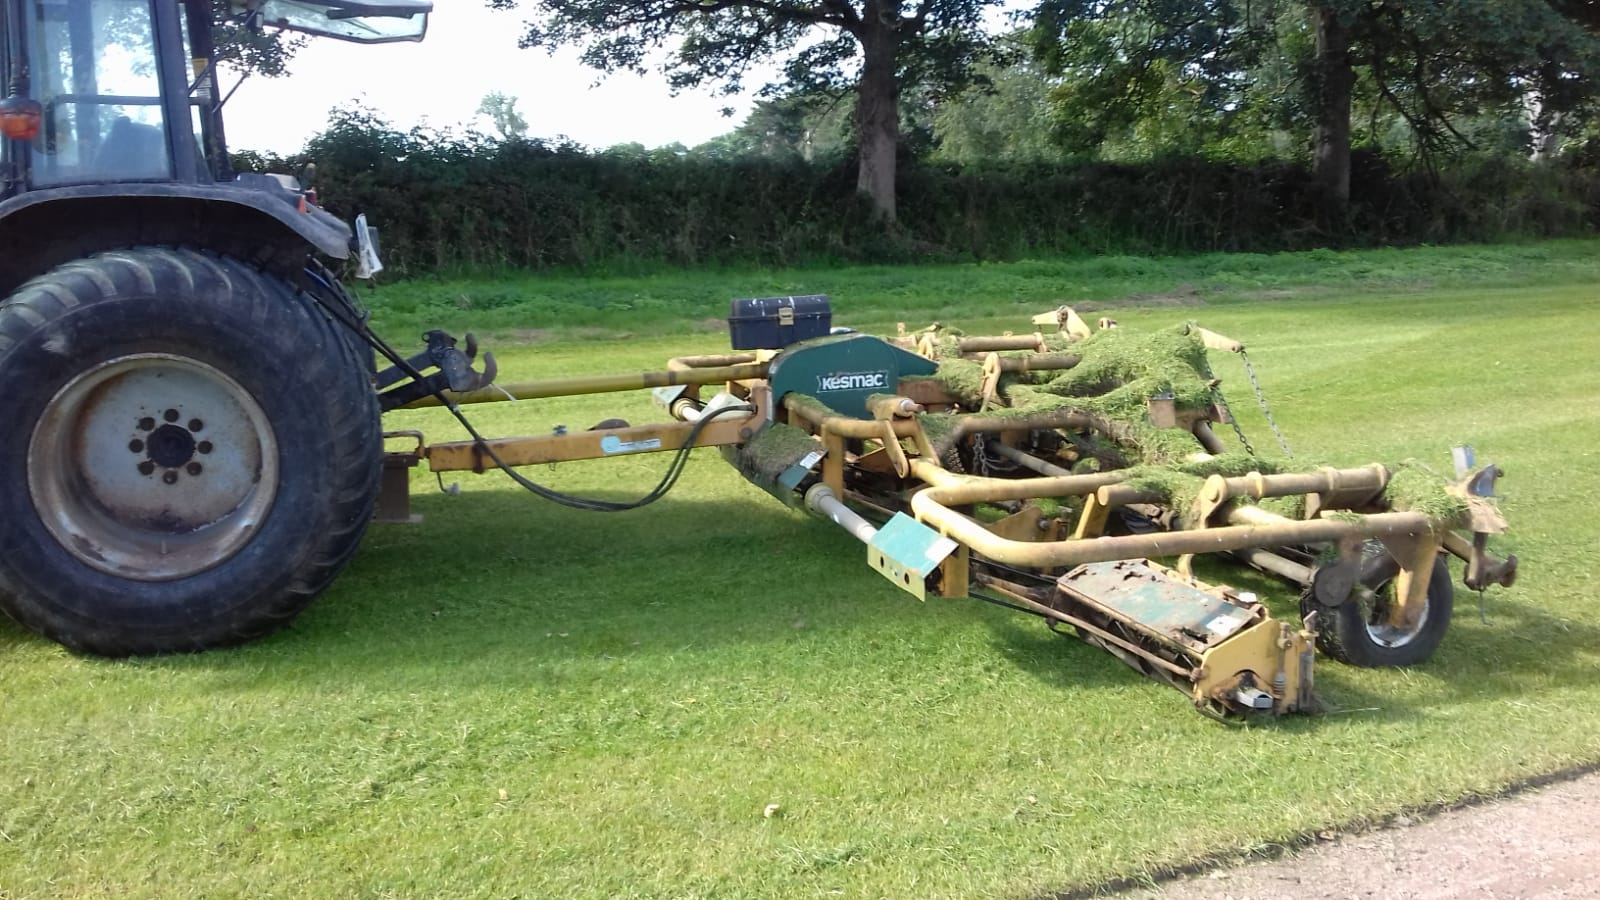 Kesmac 7 Gang Mower for sale